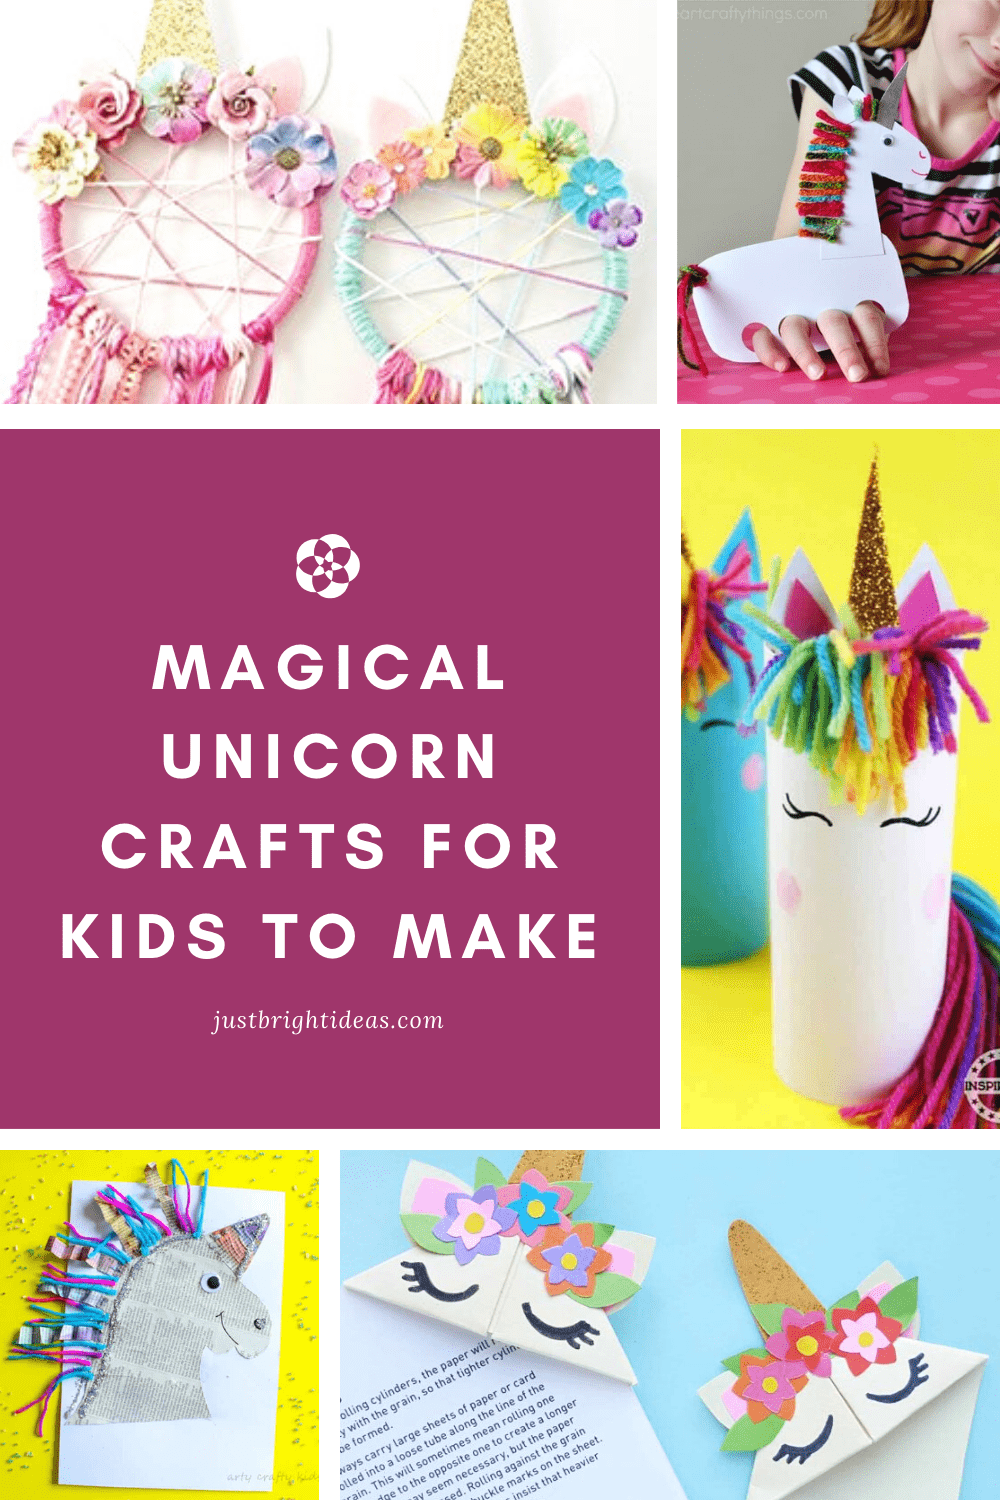 Don't miss these magical unicorn crafts that are perfect for kids of all ages - including moms!